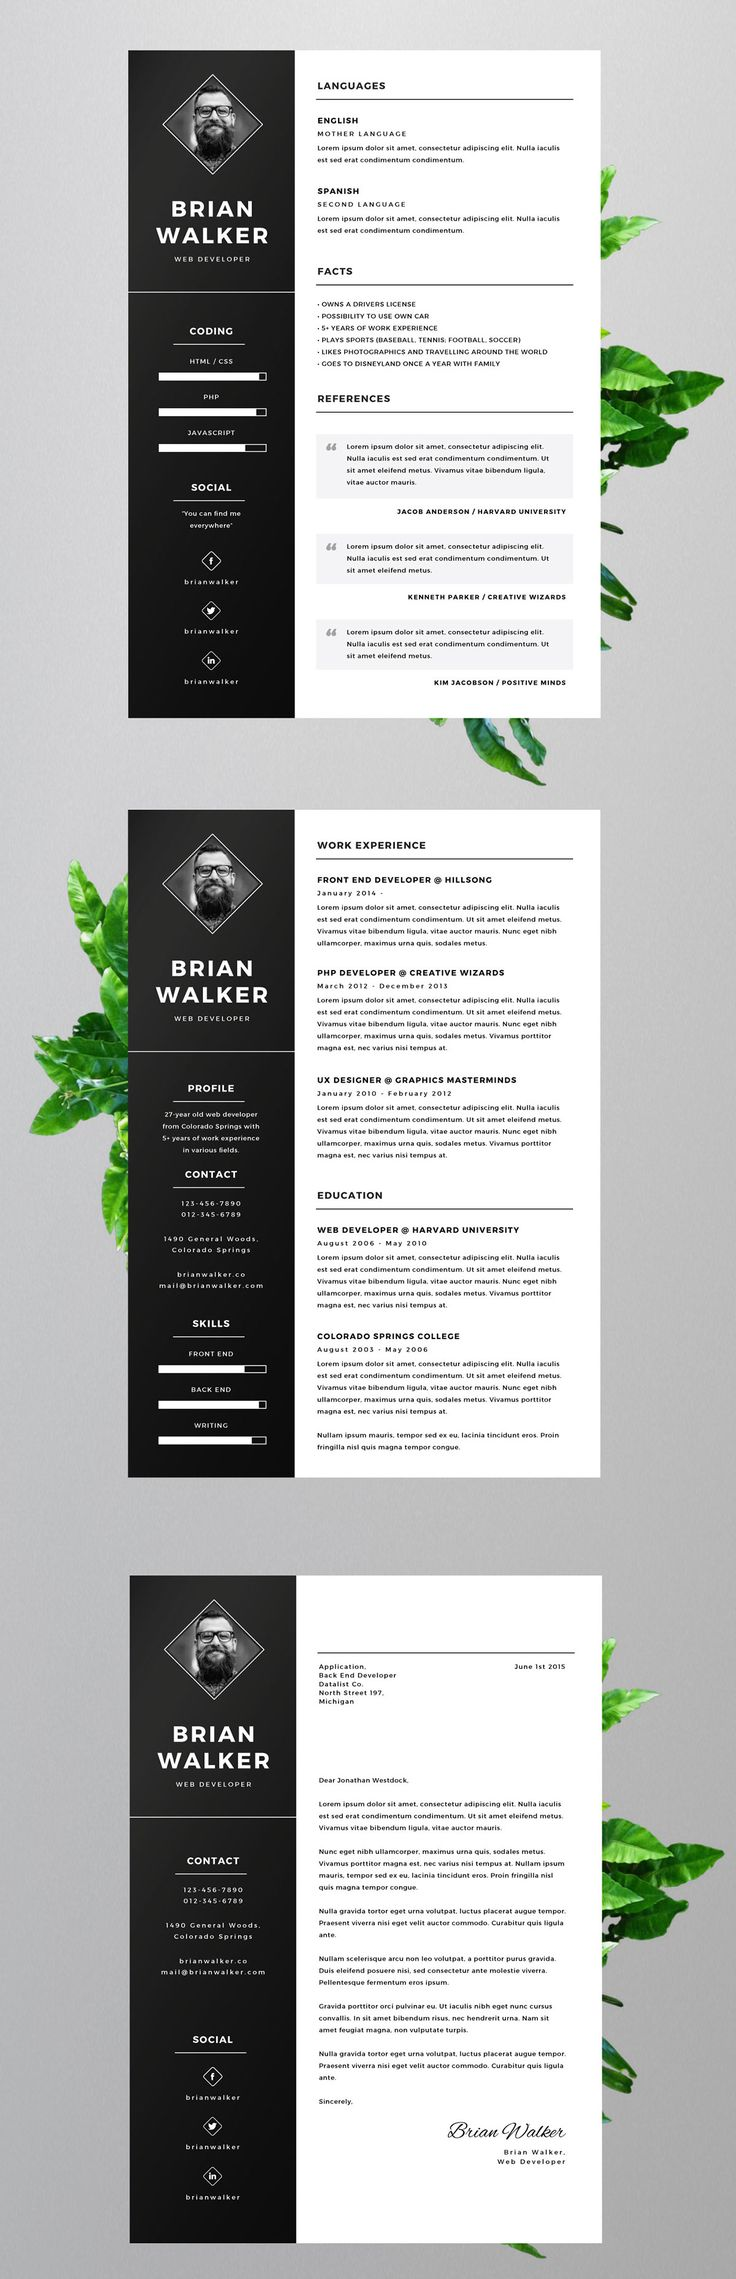 free resume template for microsoft word adobe photoshop and adobe illustrator free for personal